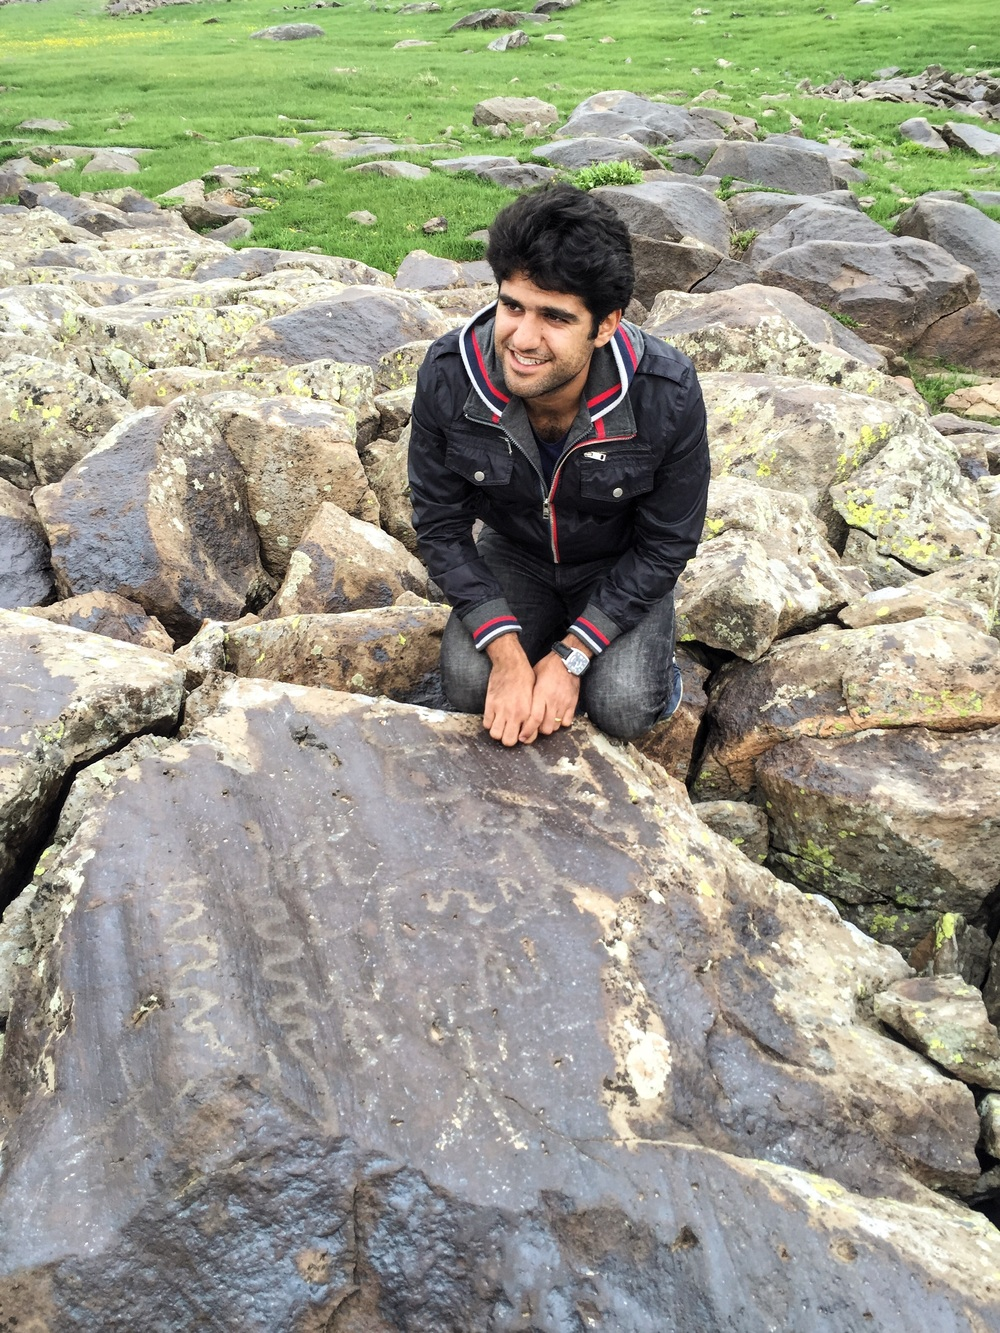 Hayk (our guide, translator, and dear friend) at the petroglyphs